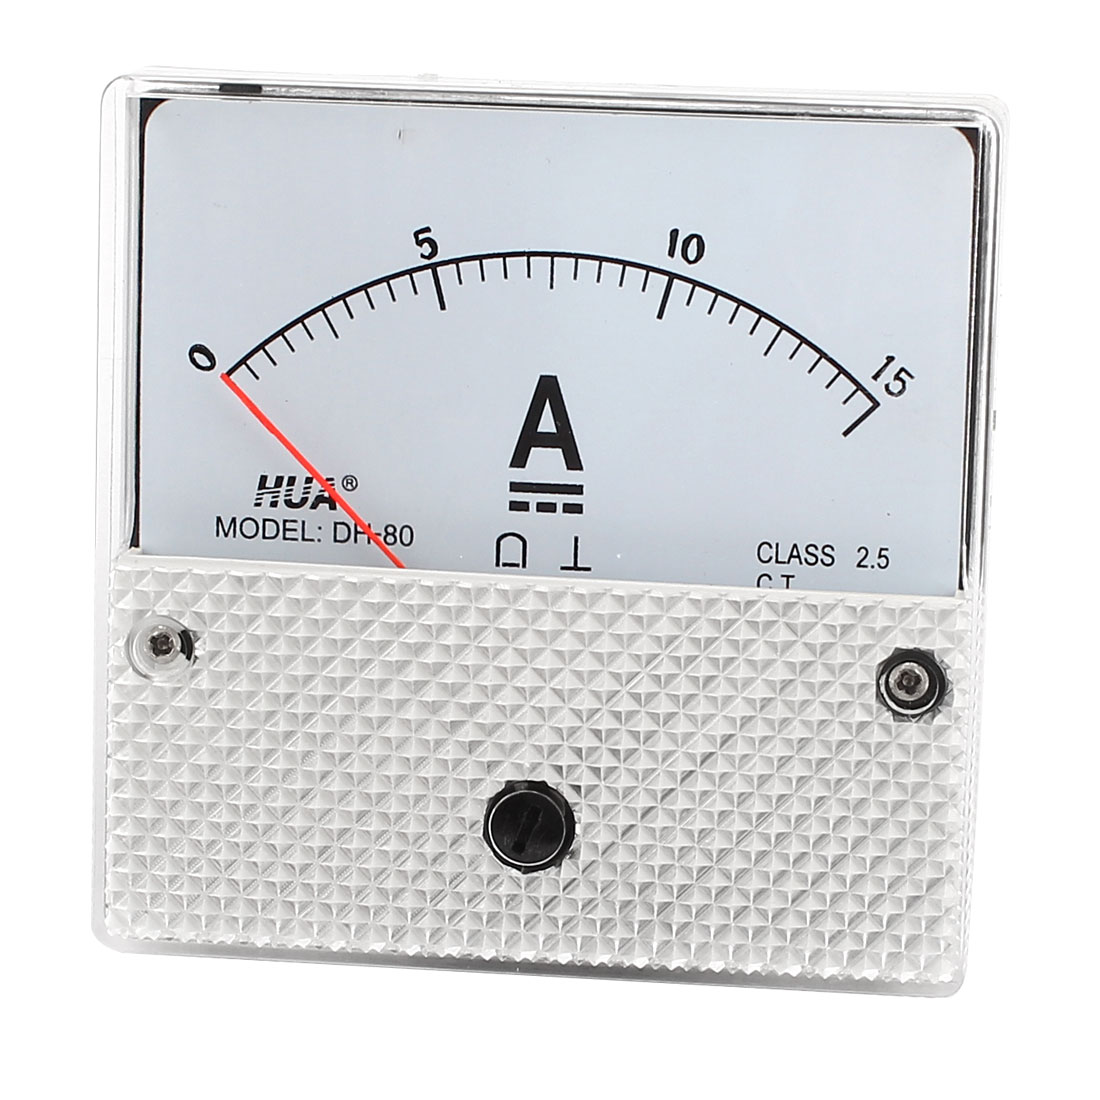 DH-80 Model Panel Current Gauge Analog Meter Ammeter DC 0-15A